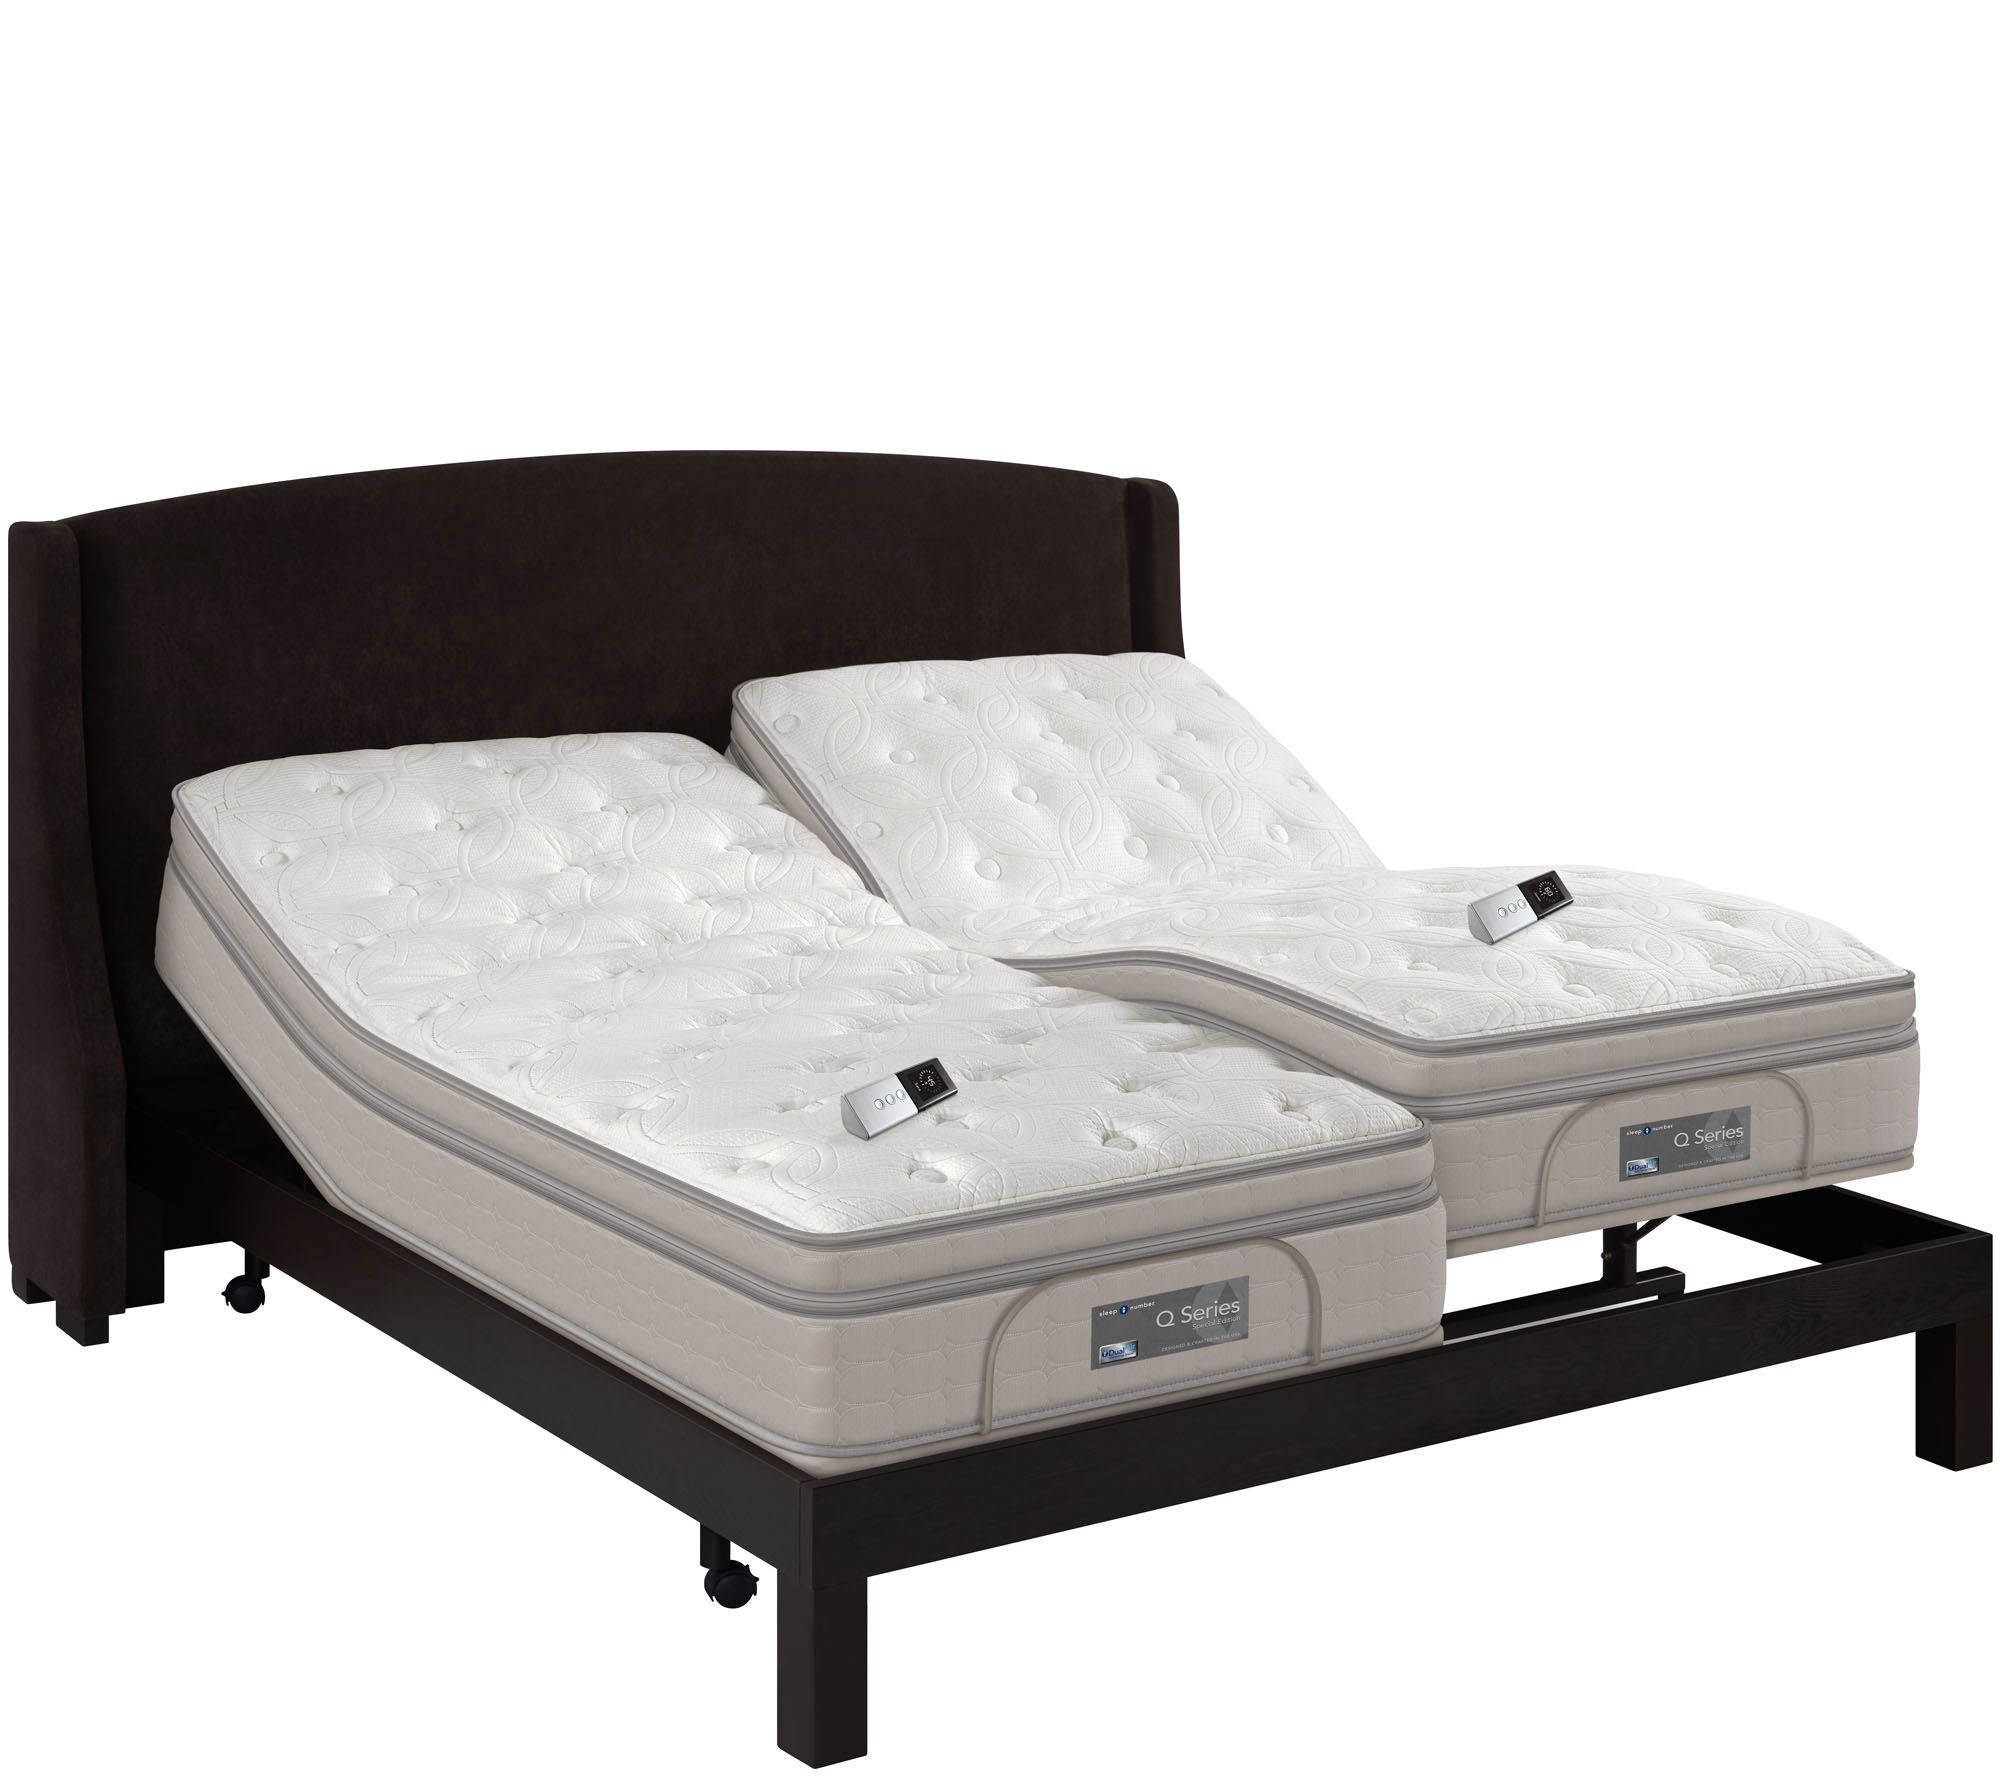 Sleep number special edition w adat sk adjustable mattress for Sleep by number mattress